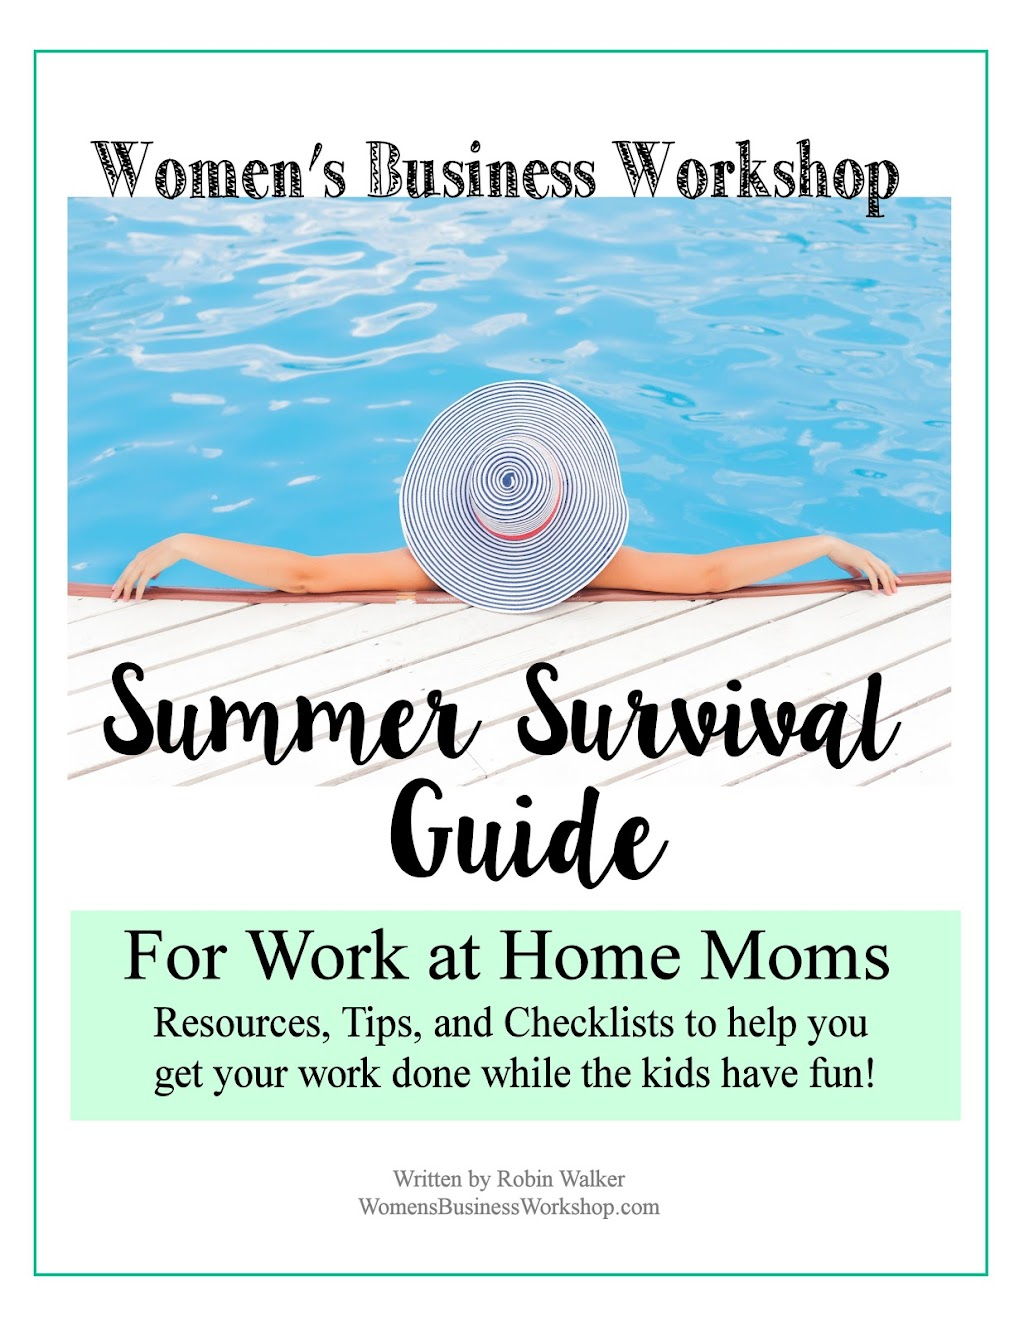 work at home this summer with kids!